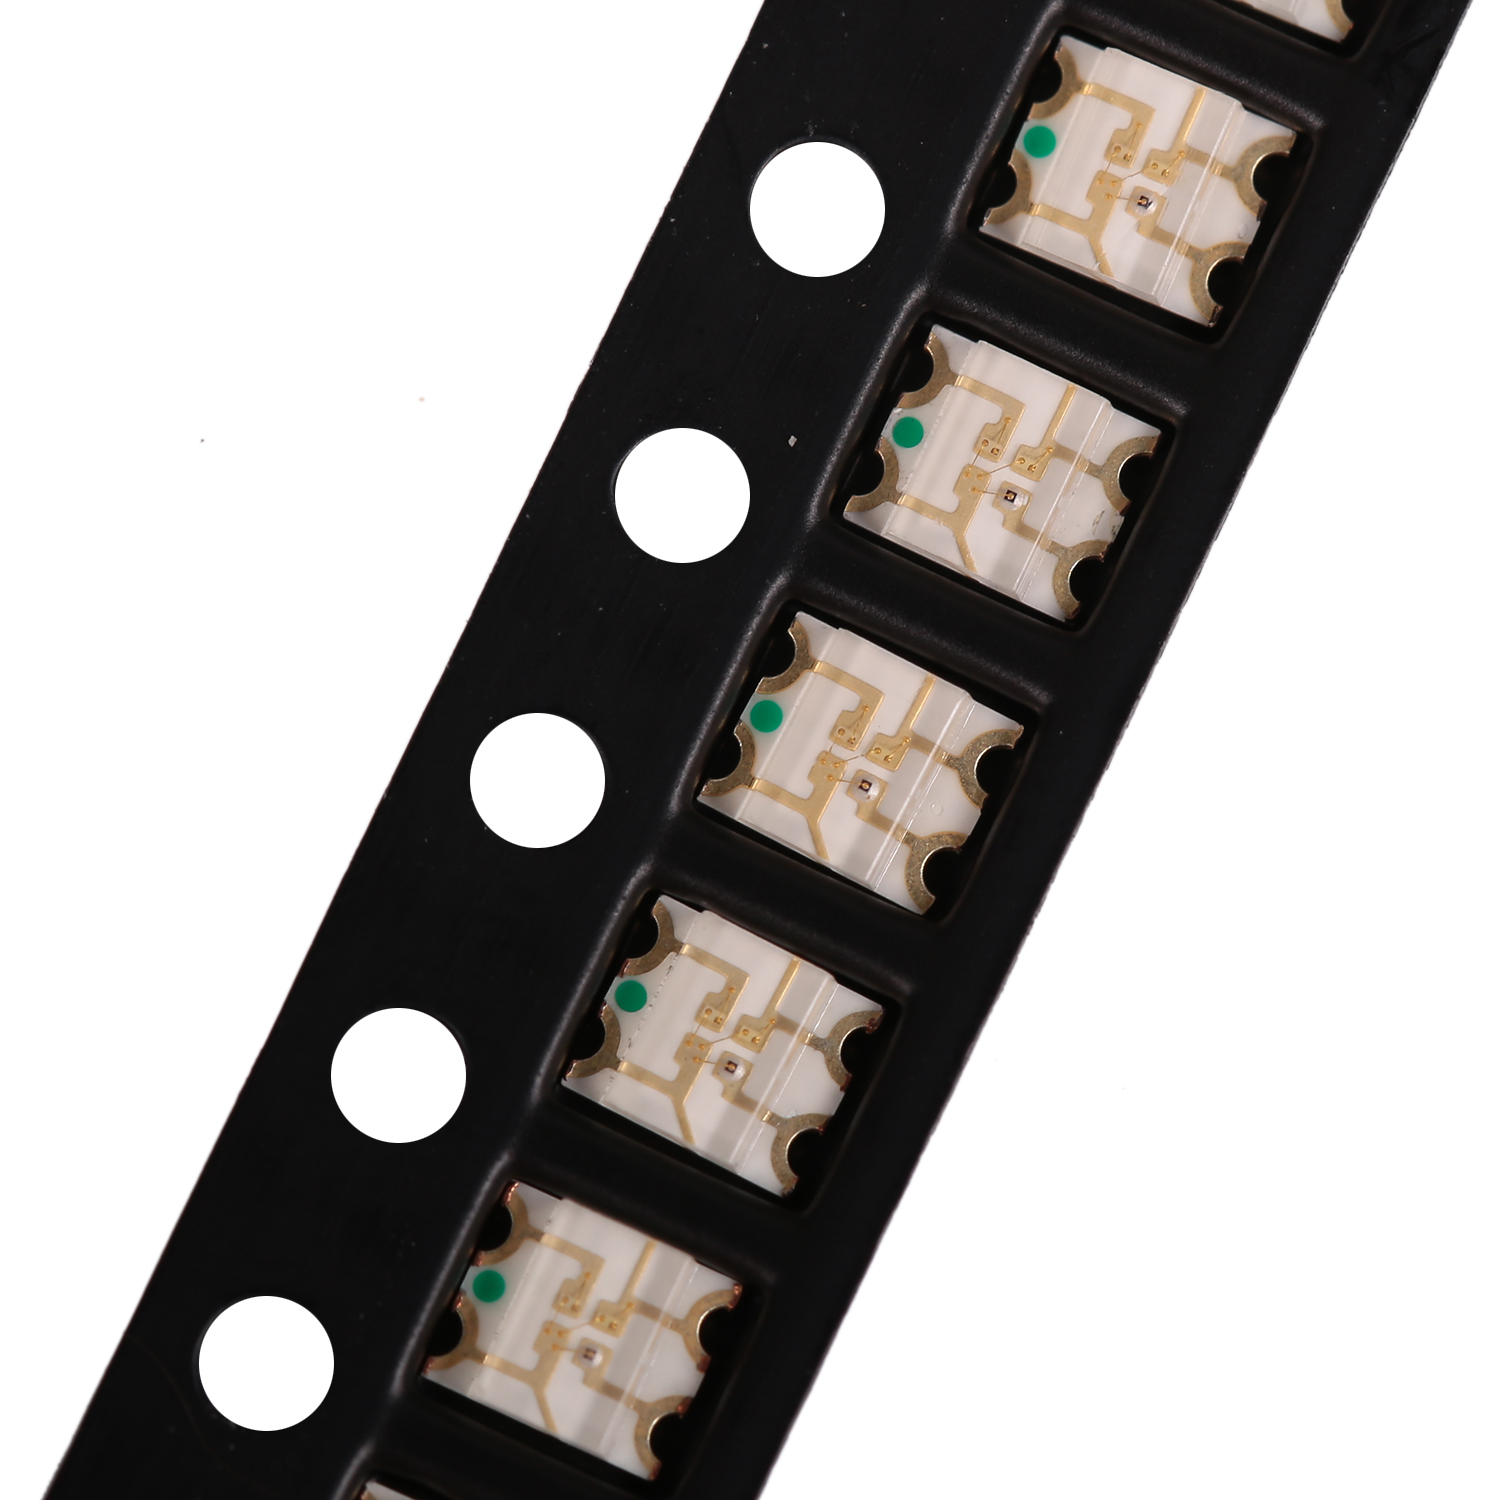 LED Beads Channel Letters Use Red Blue Green 1206 SMD LED Chip 1206 RGB Light SMD LED Color Diode